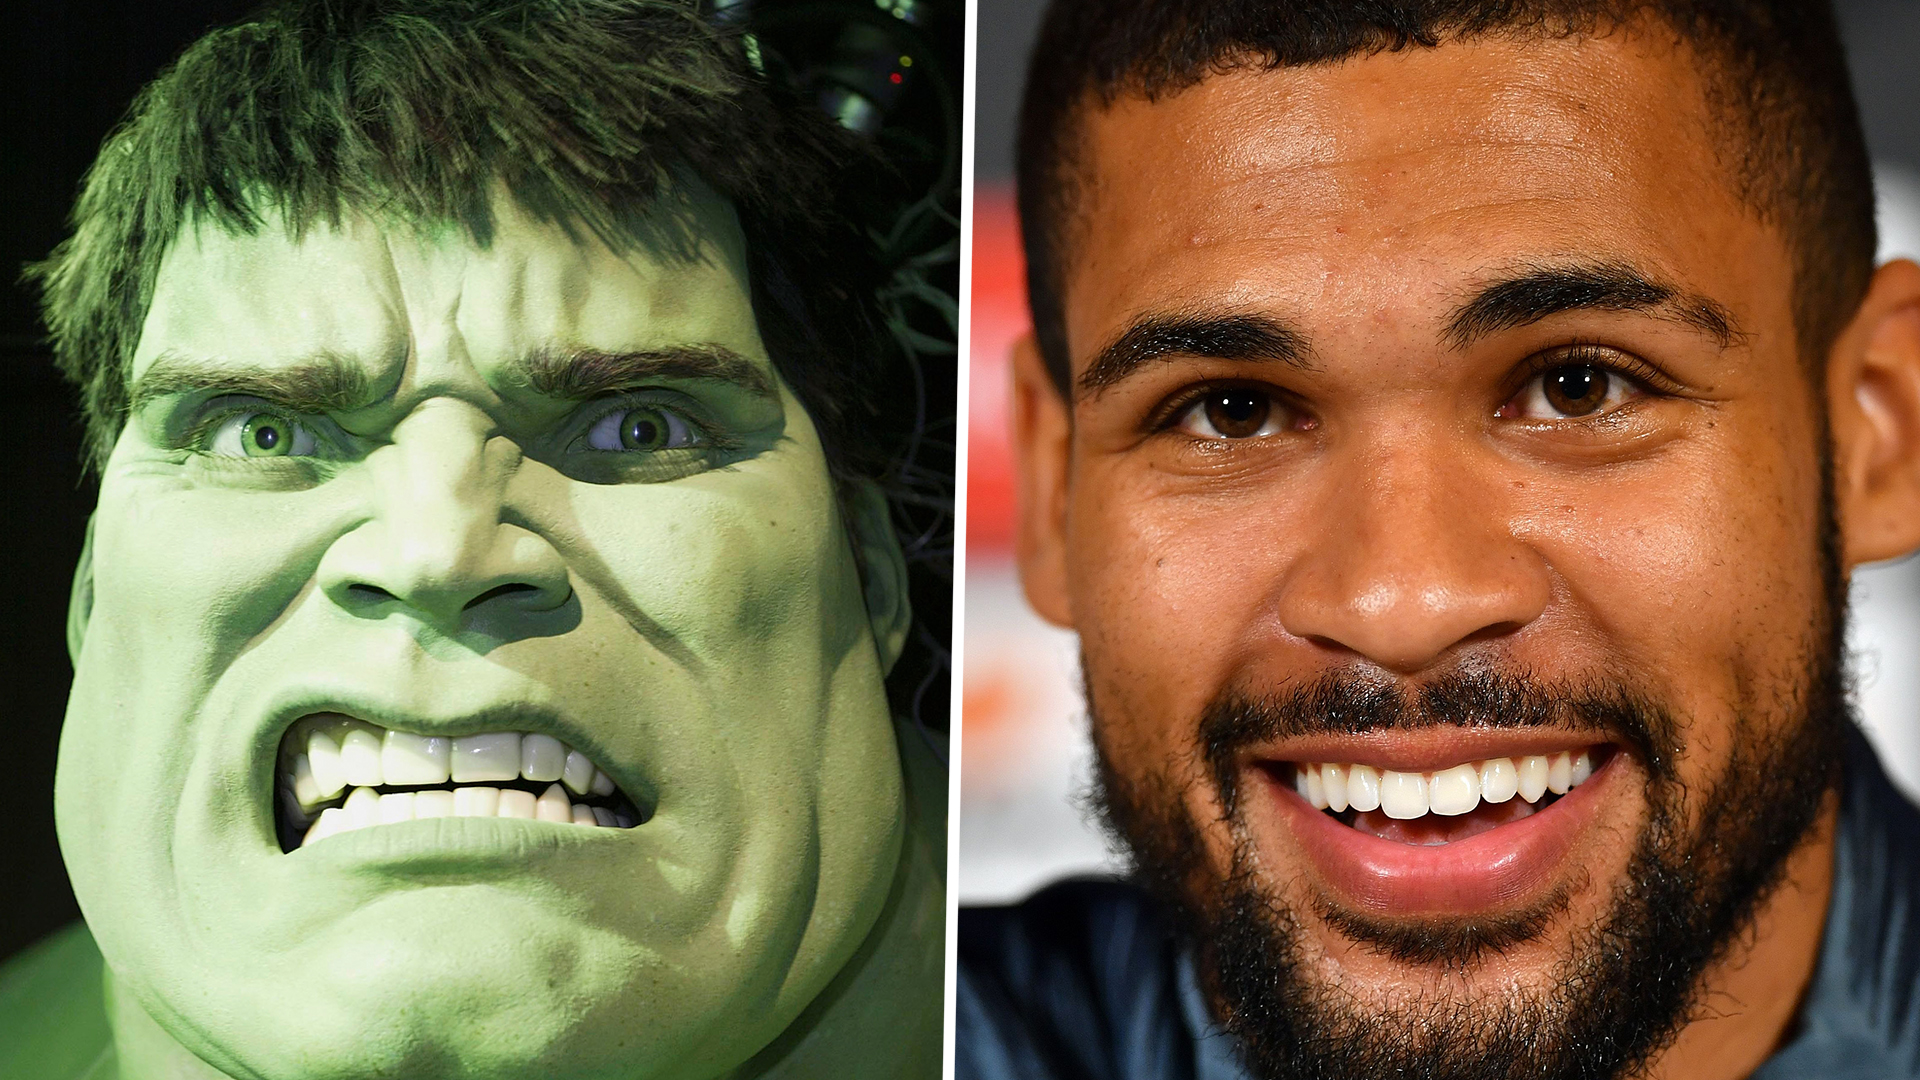 'The Hulk will be frightened of Loftus-Cheek!' - Injured Chelsea star urged to stay off weights